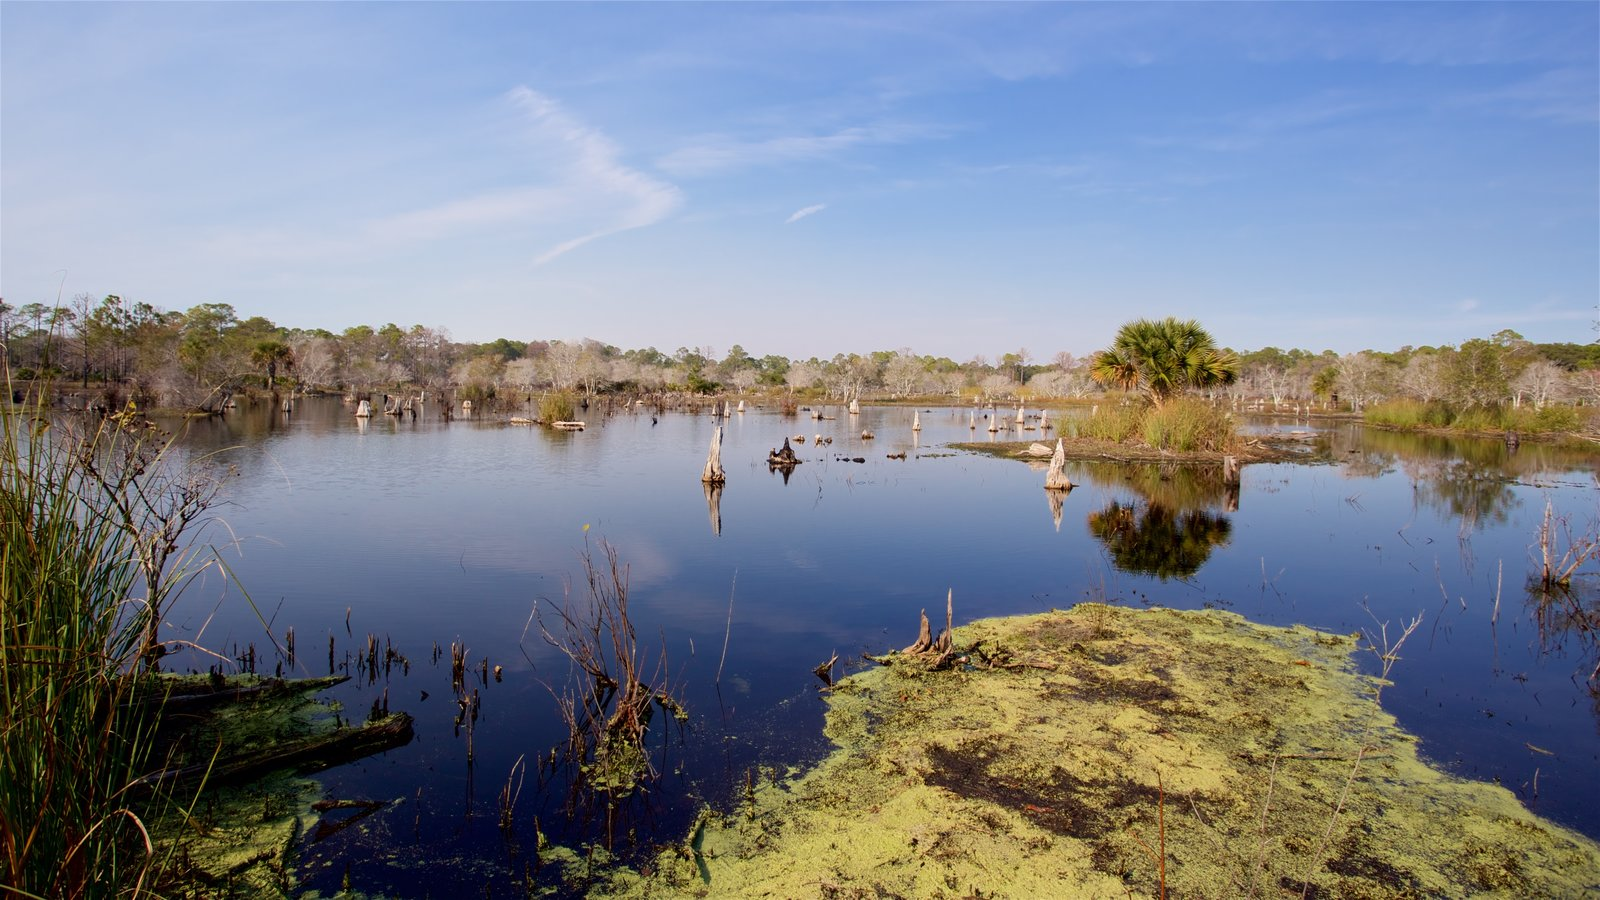 St. Andrews State Park featuring wetlands